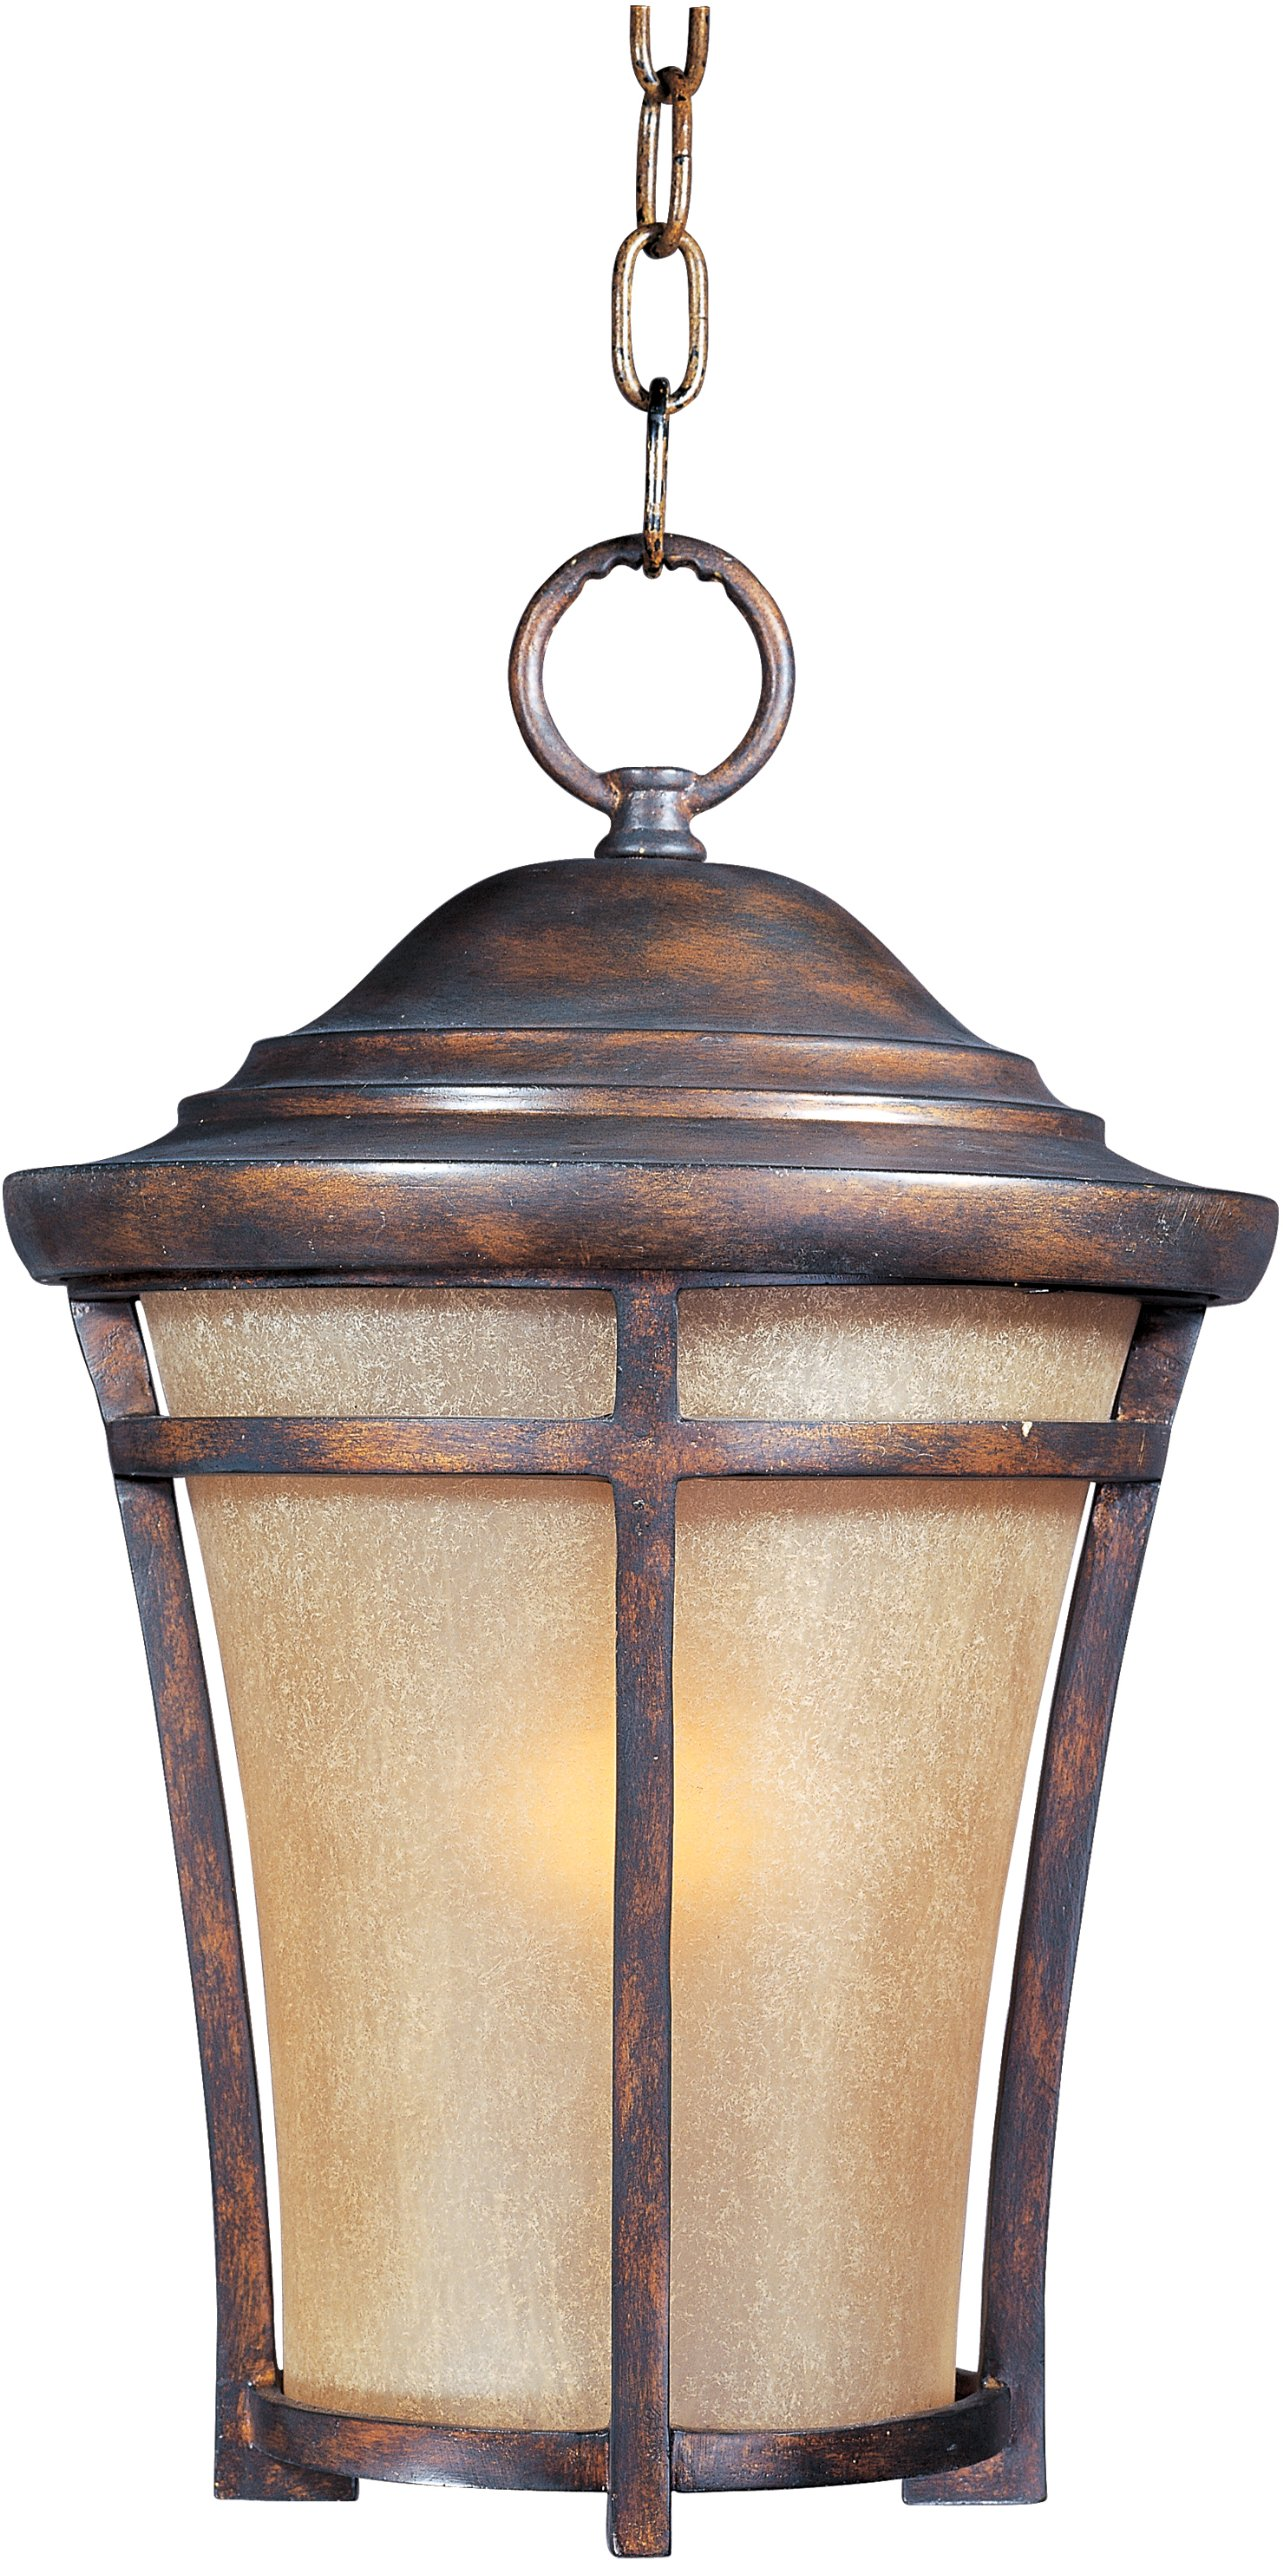 Maxim 85167GFCO Balboa VX EE 1-Light Outdoor Hanging, Copper Oxide Finish, Golden Frost Glass, GU24 Fluorescent Bulb , 100W Max., Dry Safety Rating, Standard Dimmable, Glass Shade Material, 1150 Rated Lumens